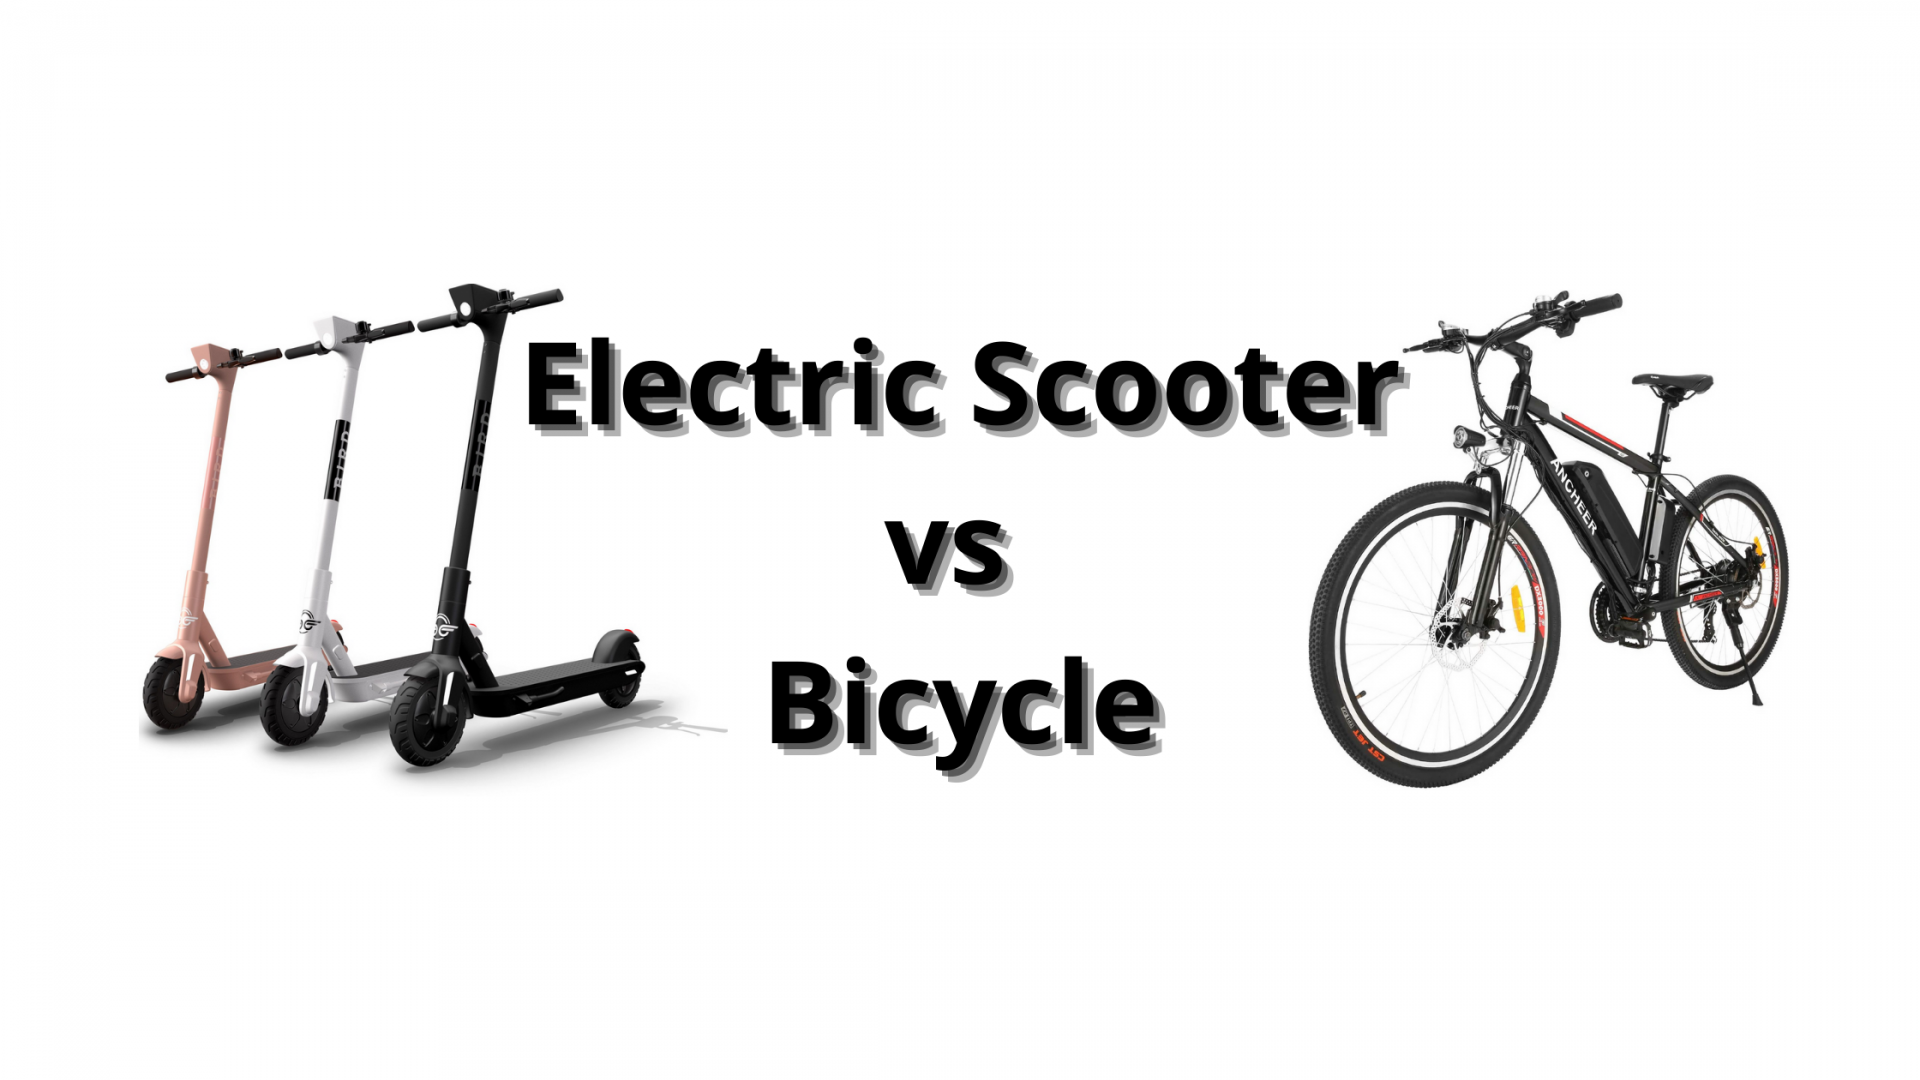 Electric Scooter vs Bicycle